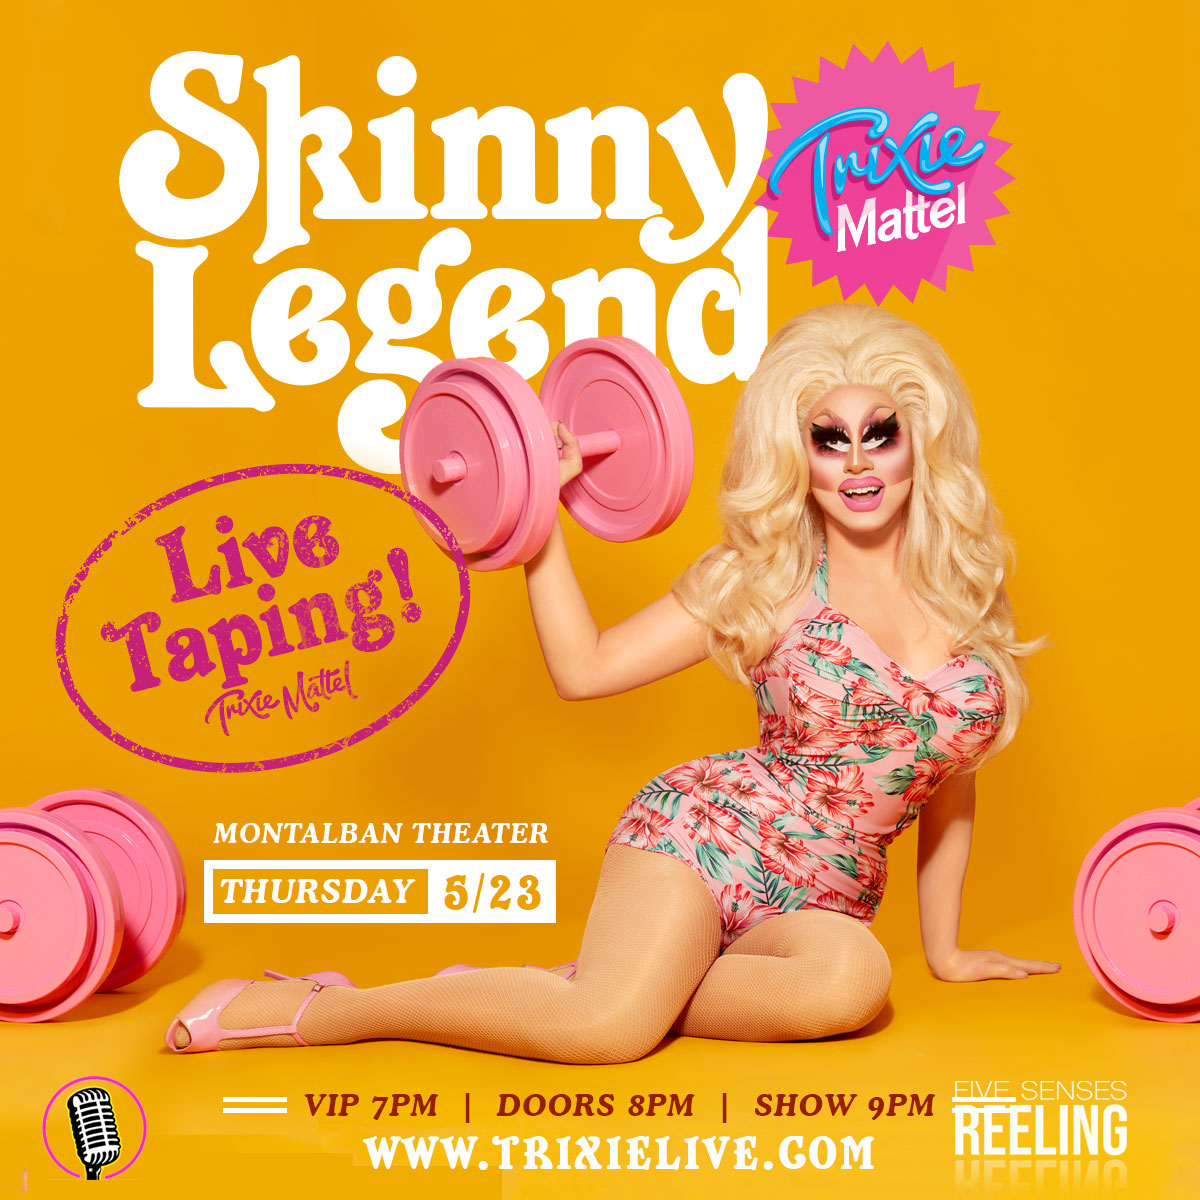 Skinny-Legend-5.23-Square-Live-Taping-FULL.jpg